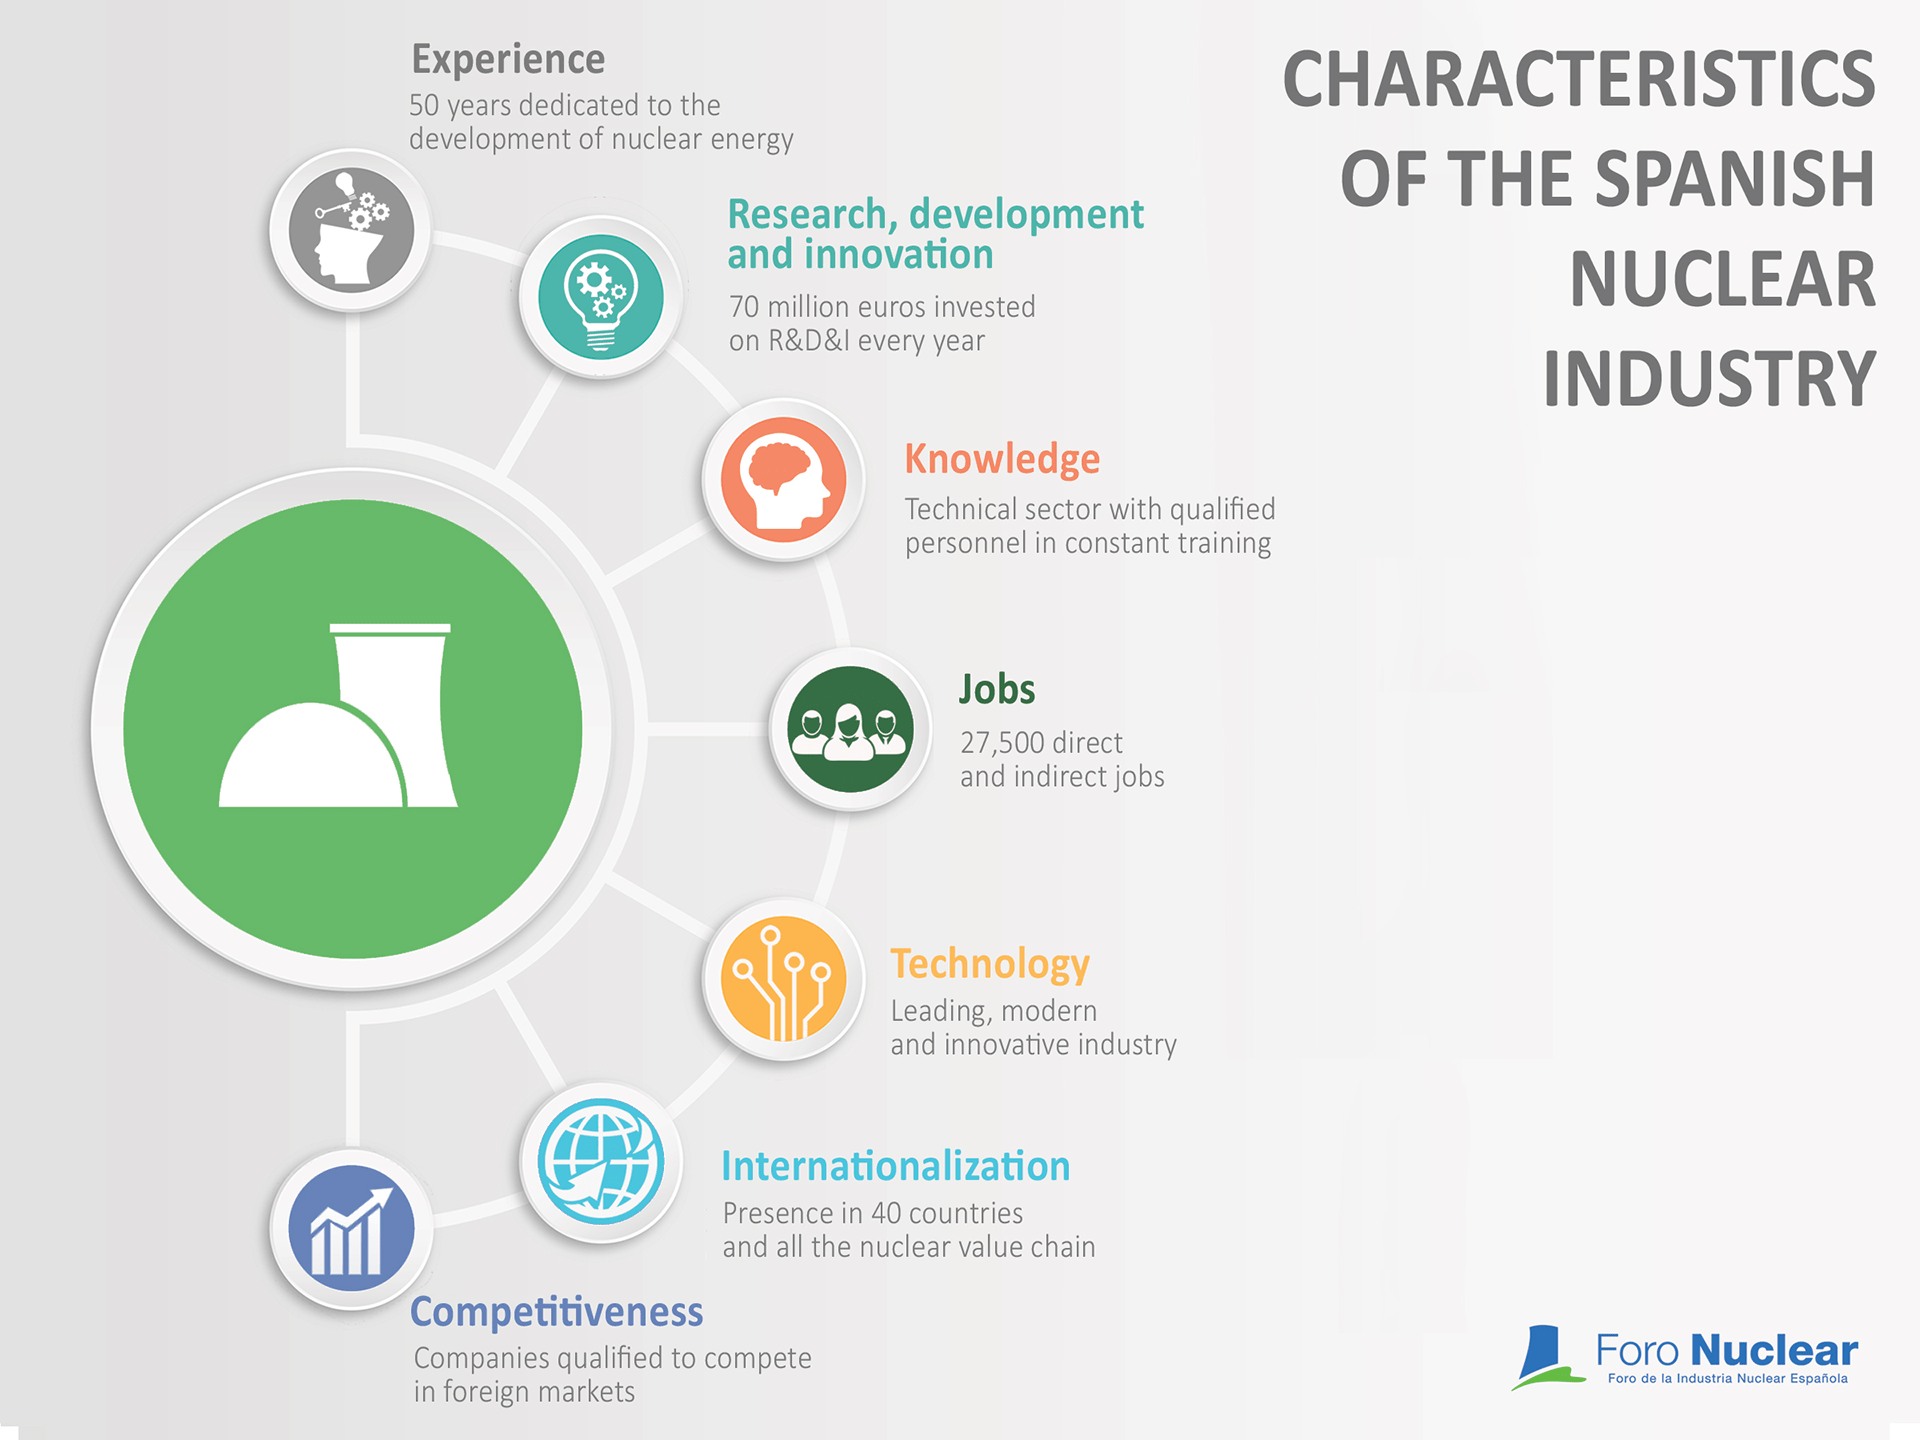 Characteristics of the Spanish nuclear industry